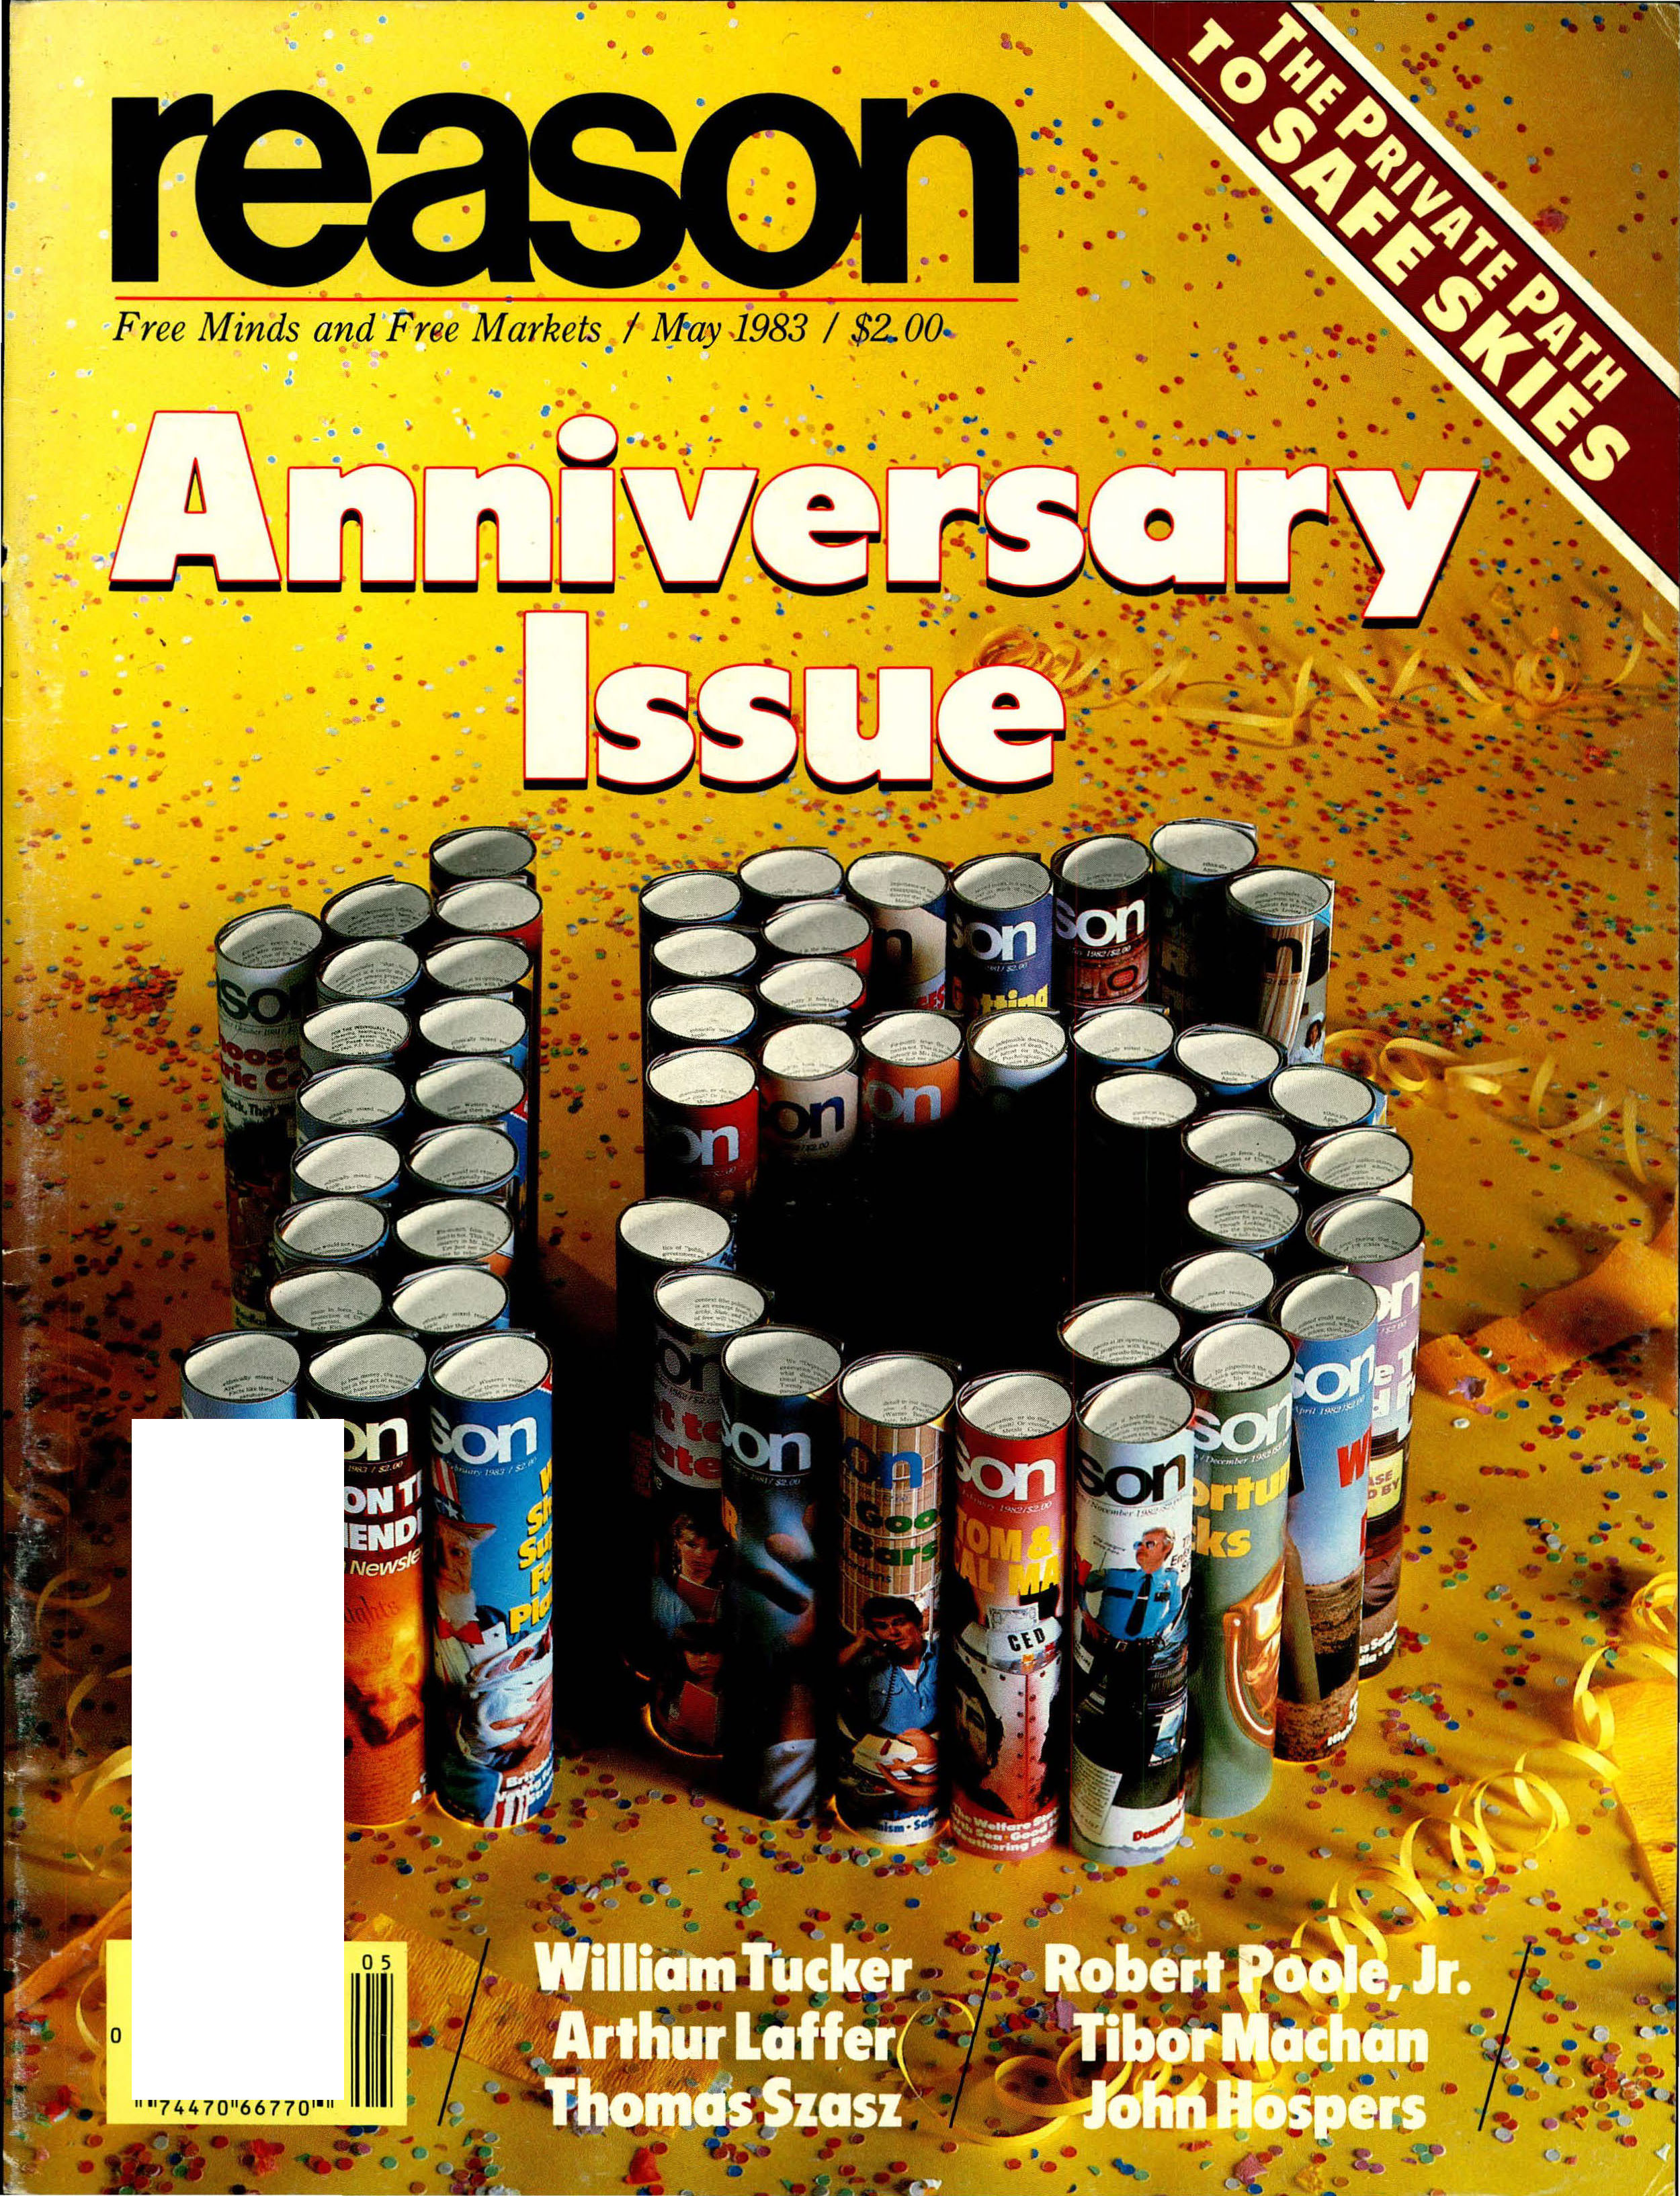 Reason Magazine, May 1983 cover image